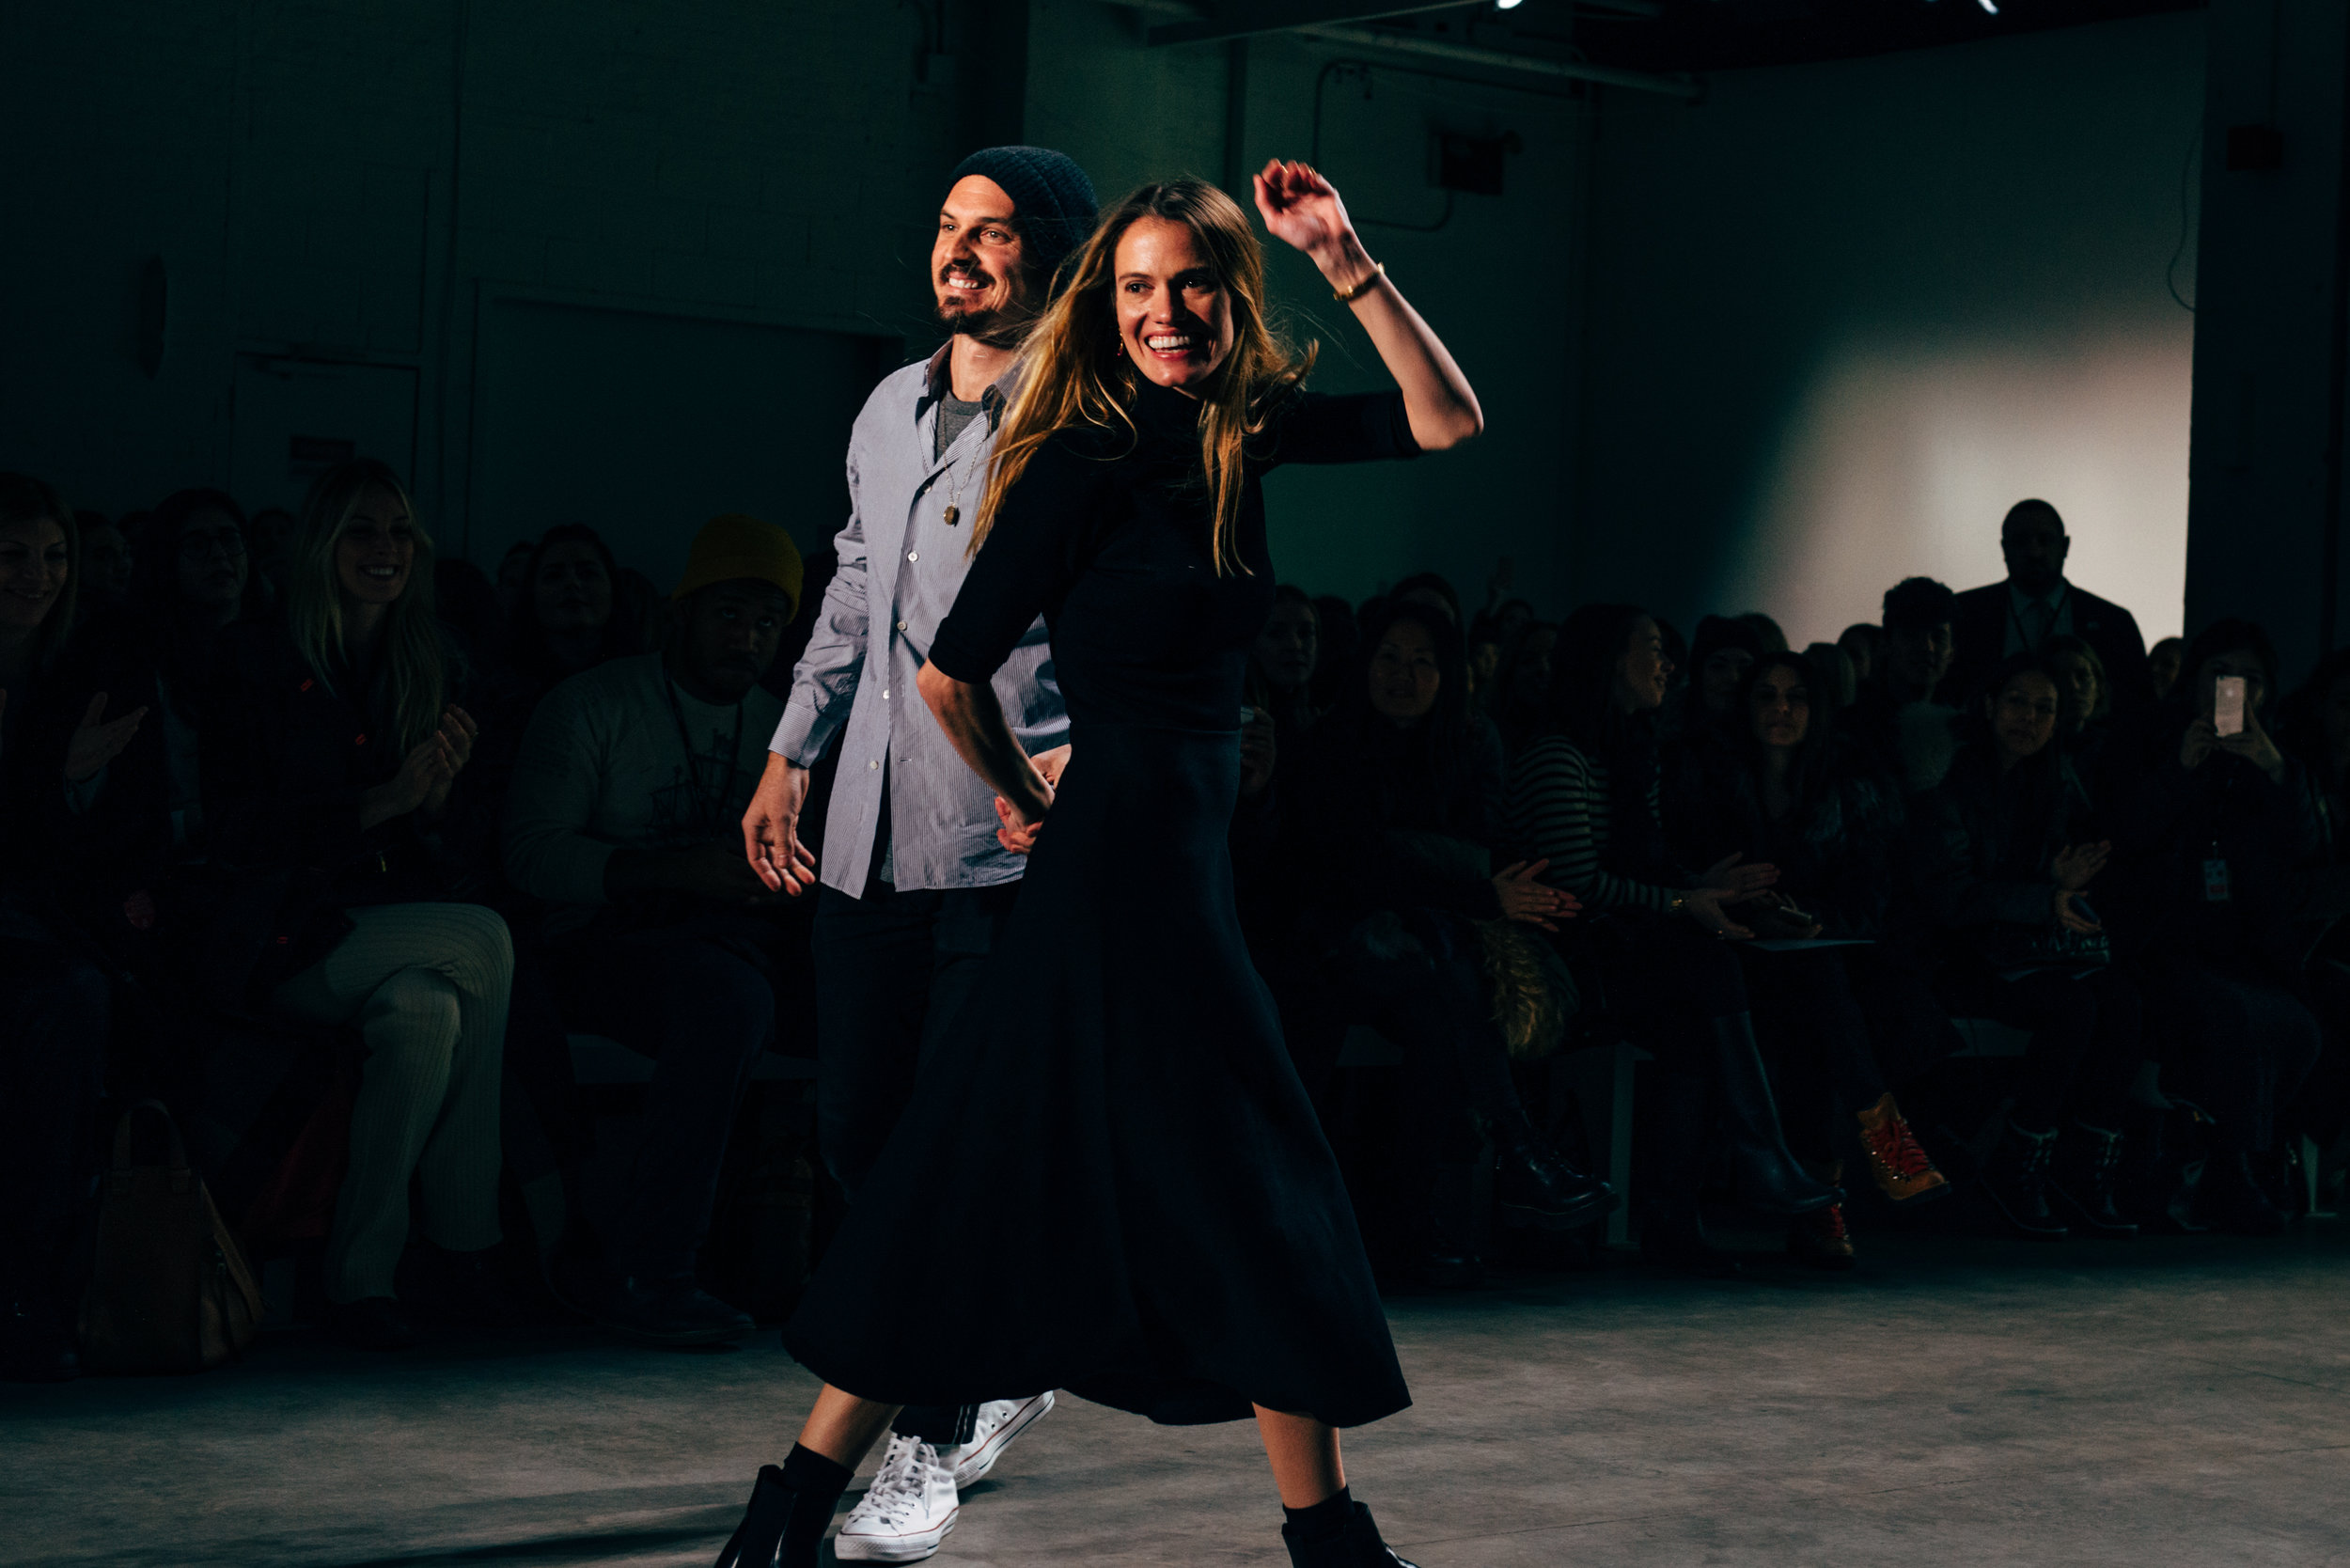 Greenberg_NYFW_Brock_020917-965.jpg